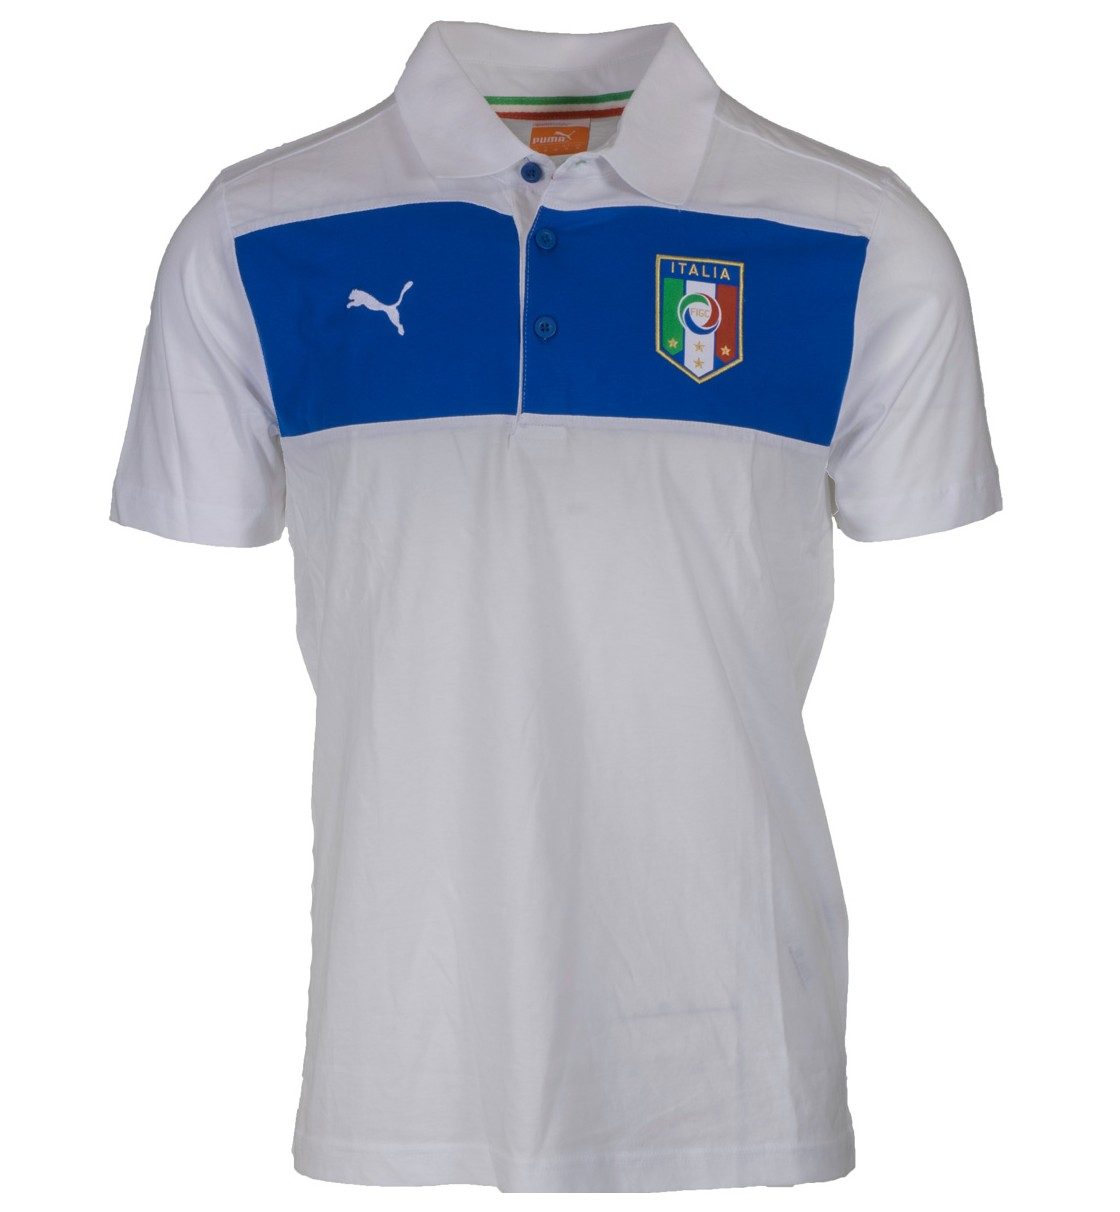 Buy puma italia polo shirt - 59% OFF! 7066bb49ff6f